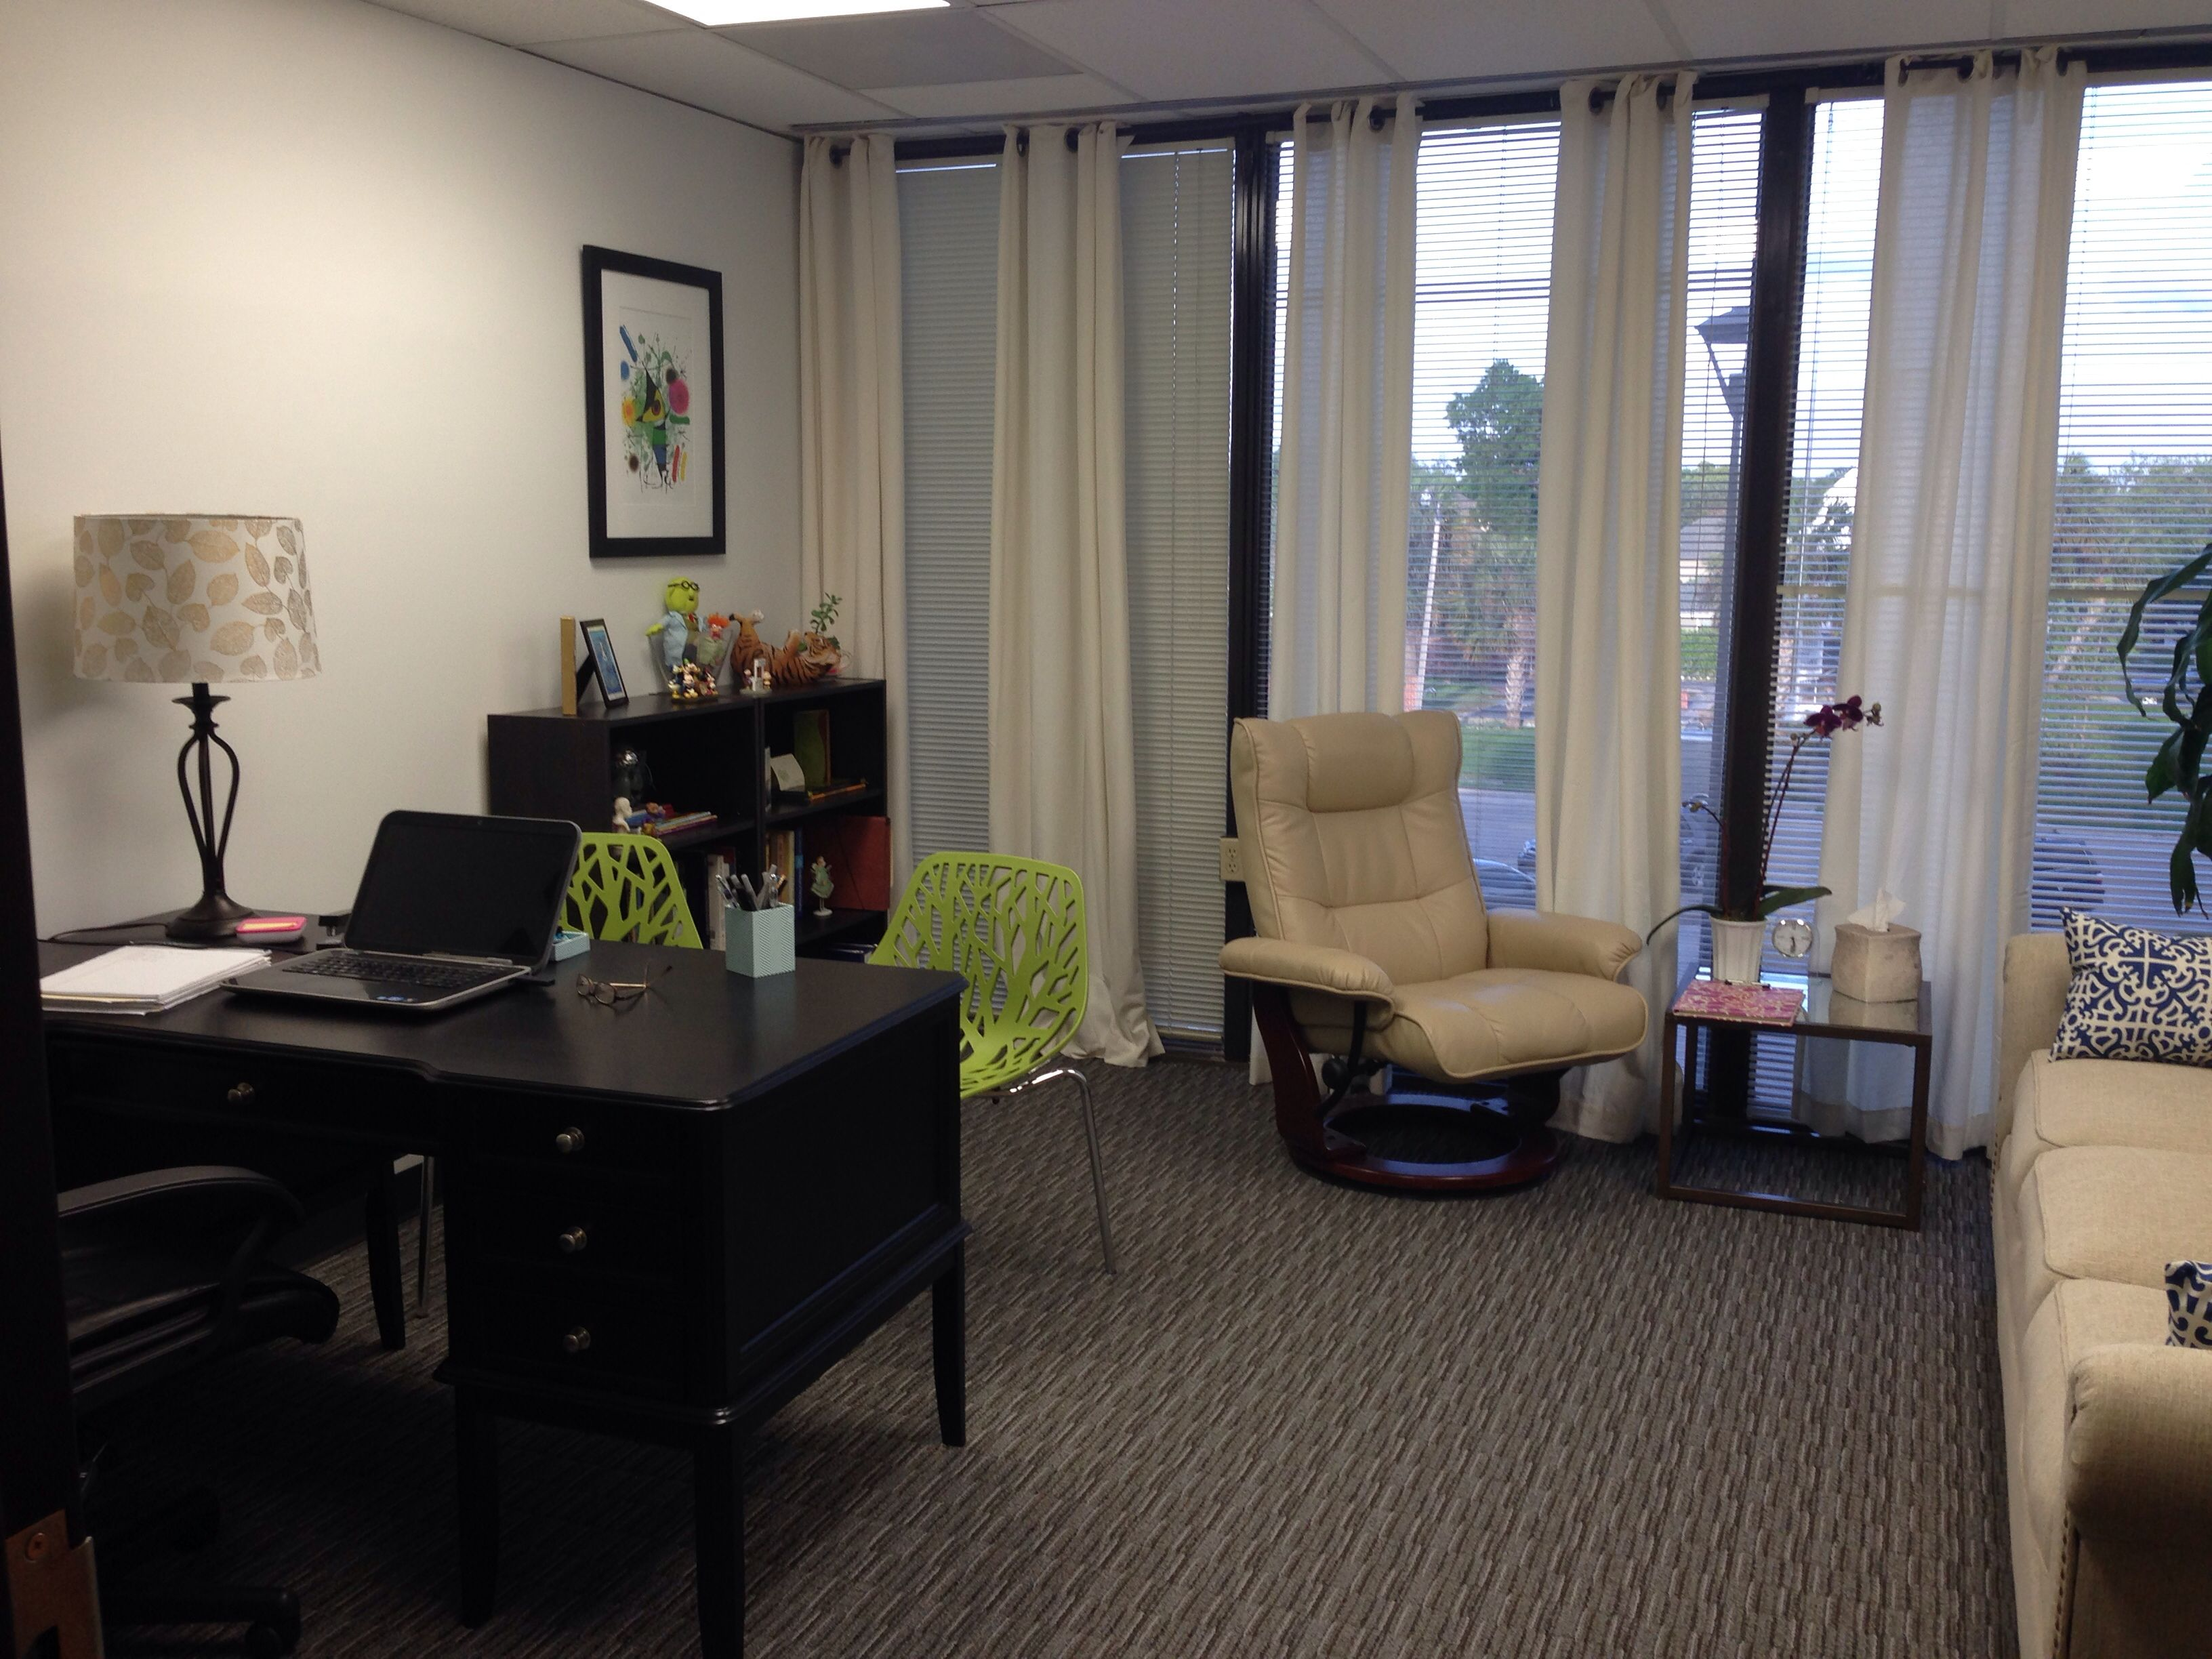 psychologist office design. Therapy Office Psychologist Design C